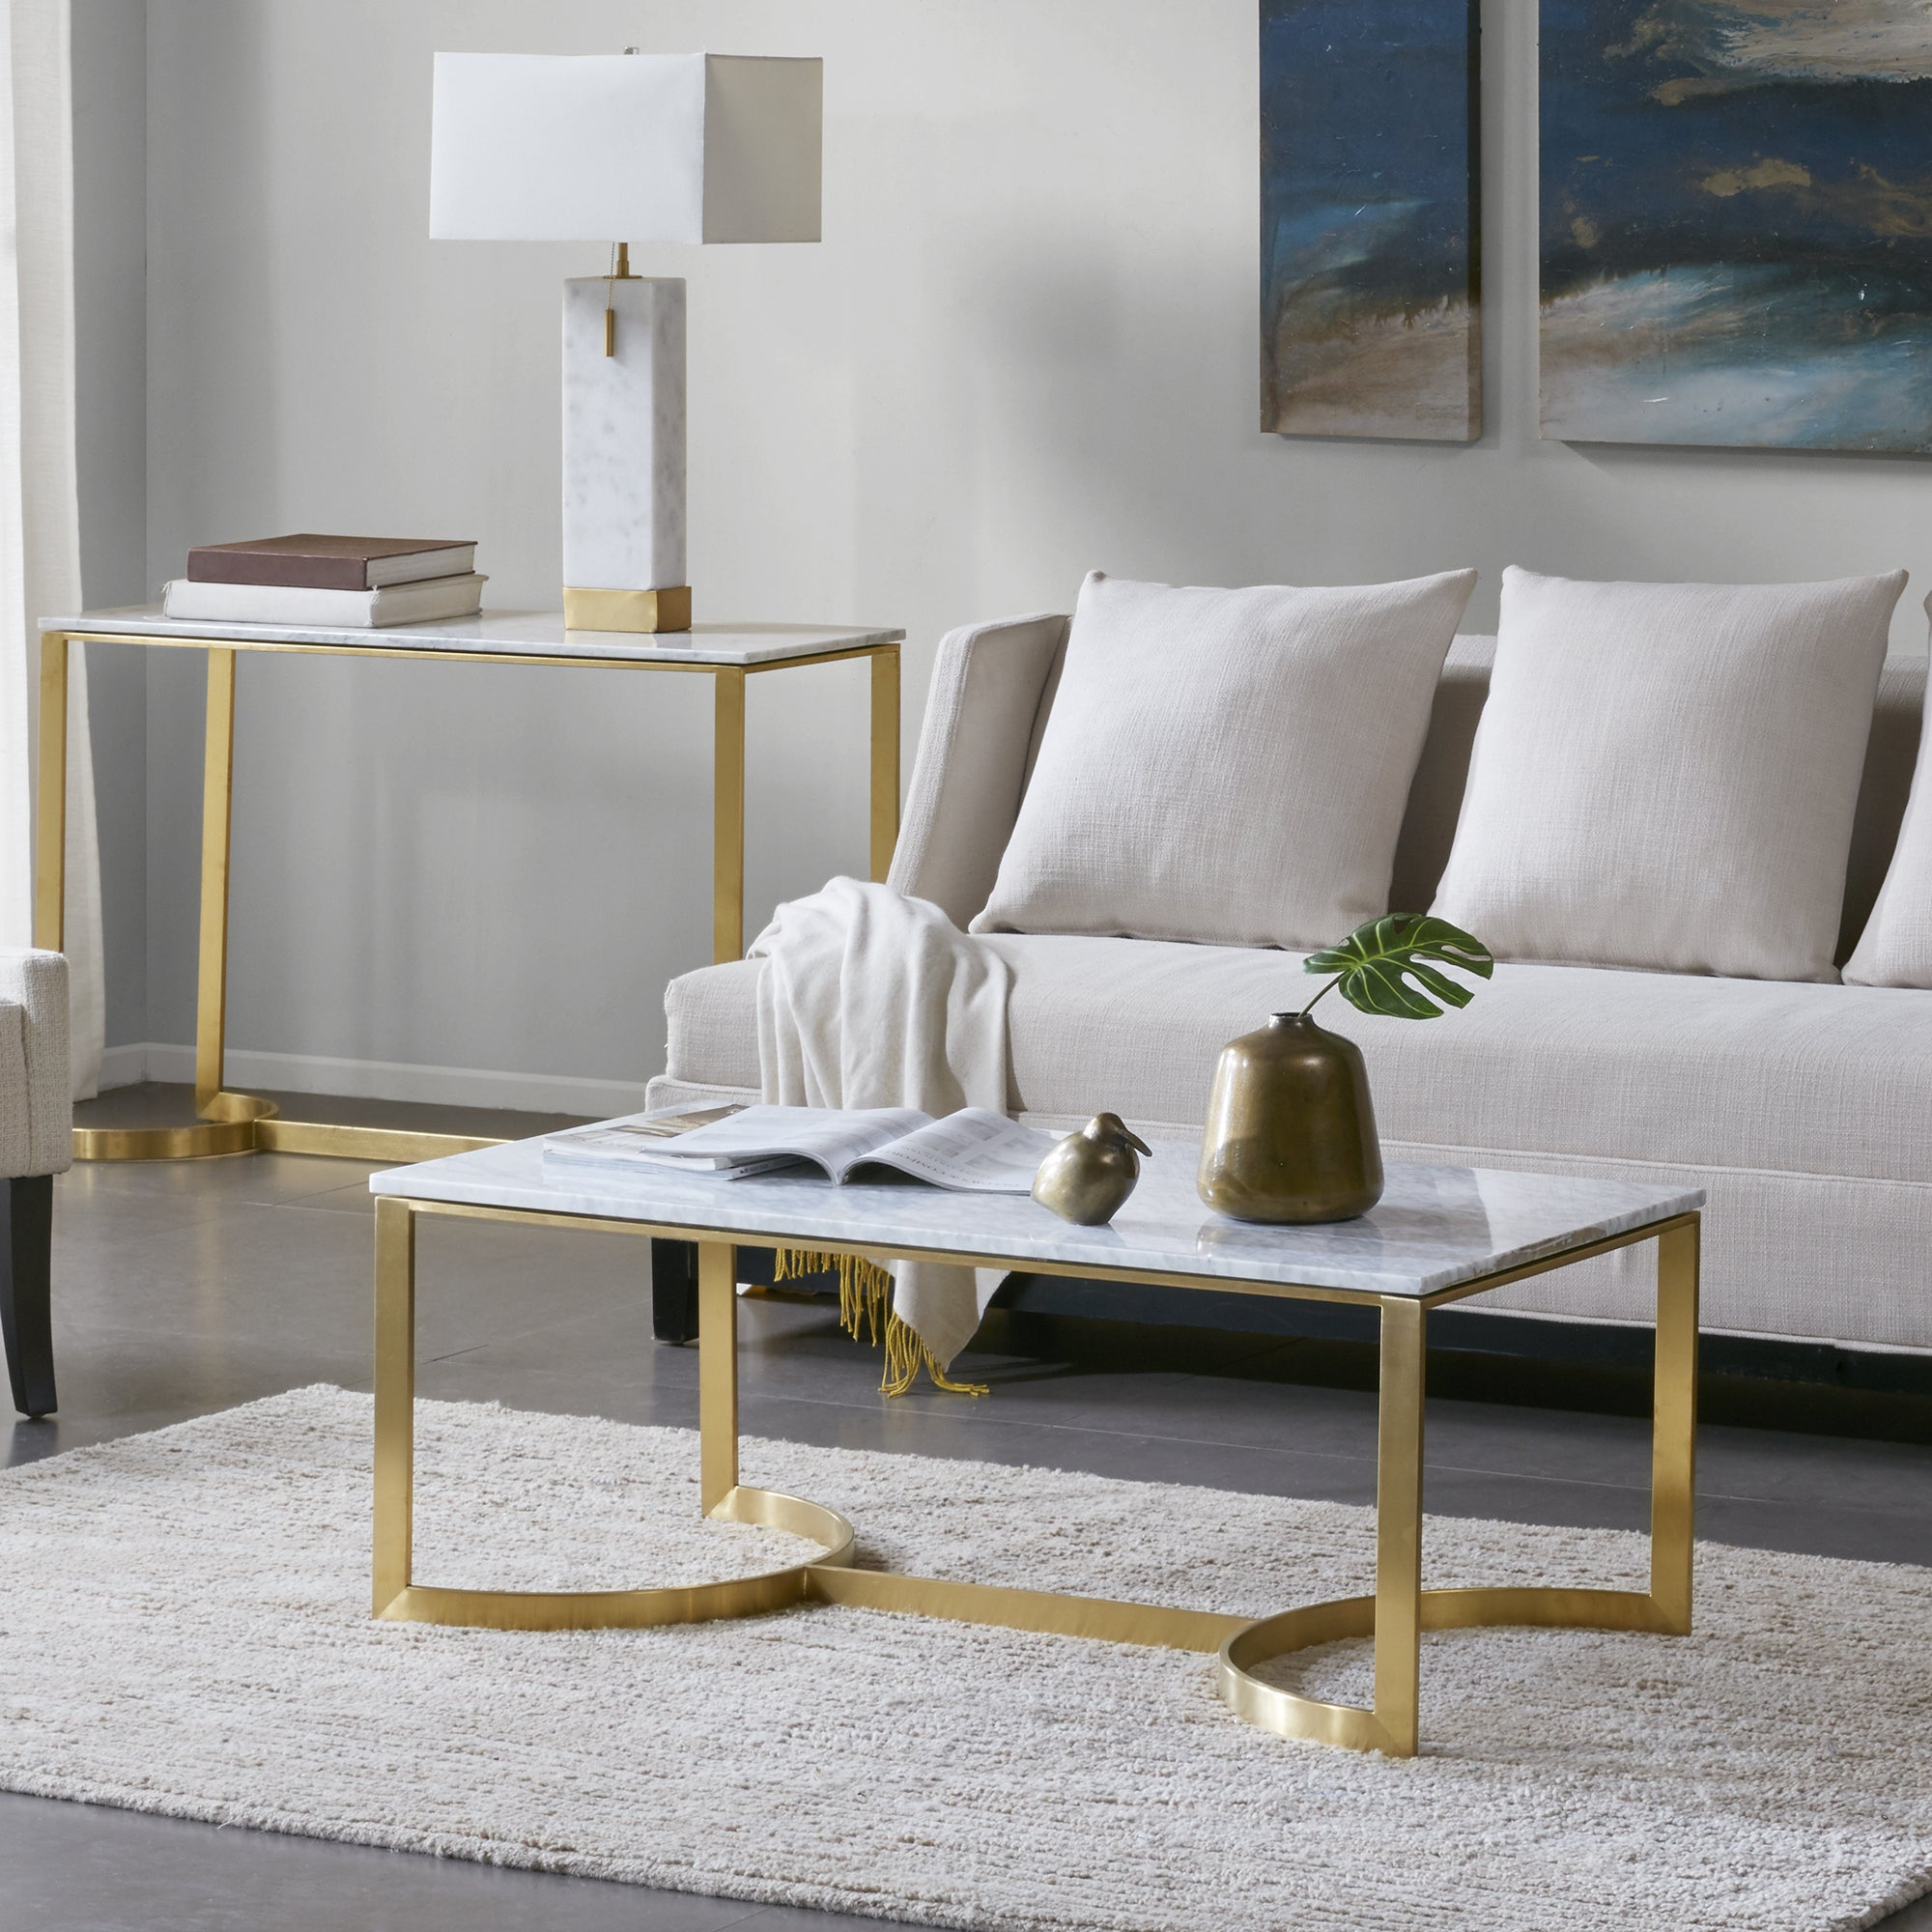 Buy Marble, Coffee Tables Online At Overstock   Our Best Living Room  Furniture Deals